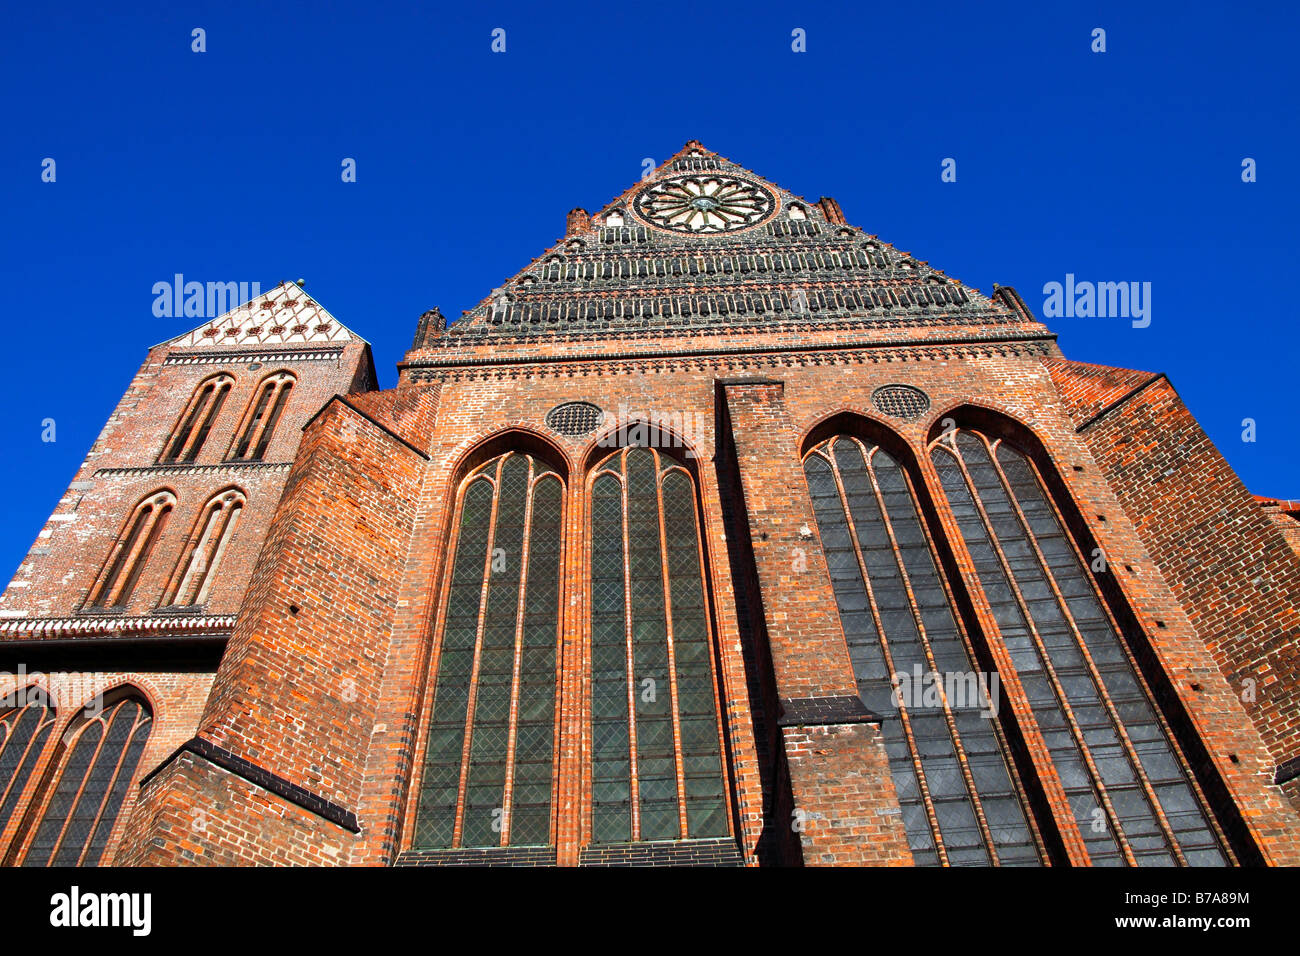 Church of St Nicholas in the historic city centre of Wismar, UNESCO World Heritage Site, Hanseatic League city of - Stock Image